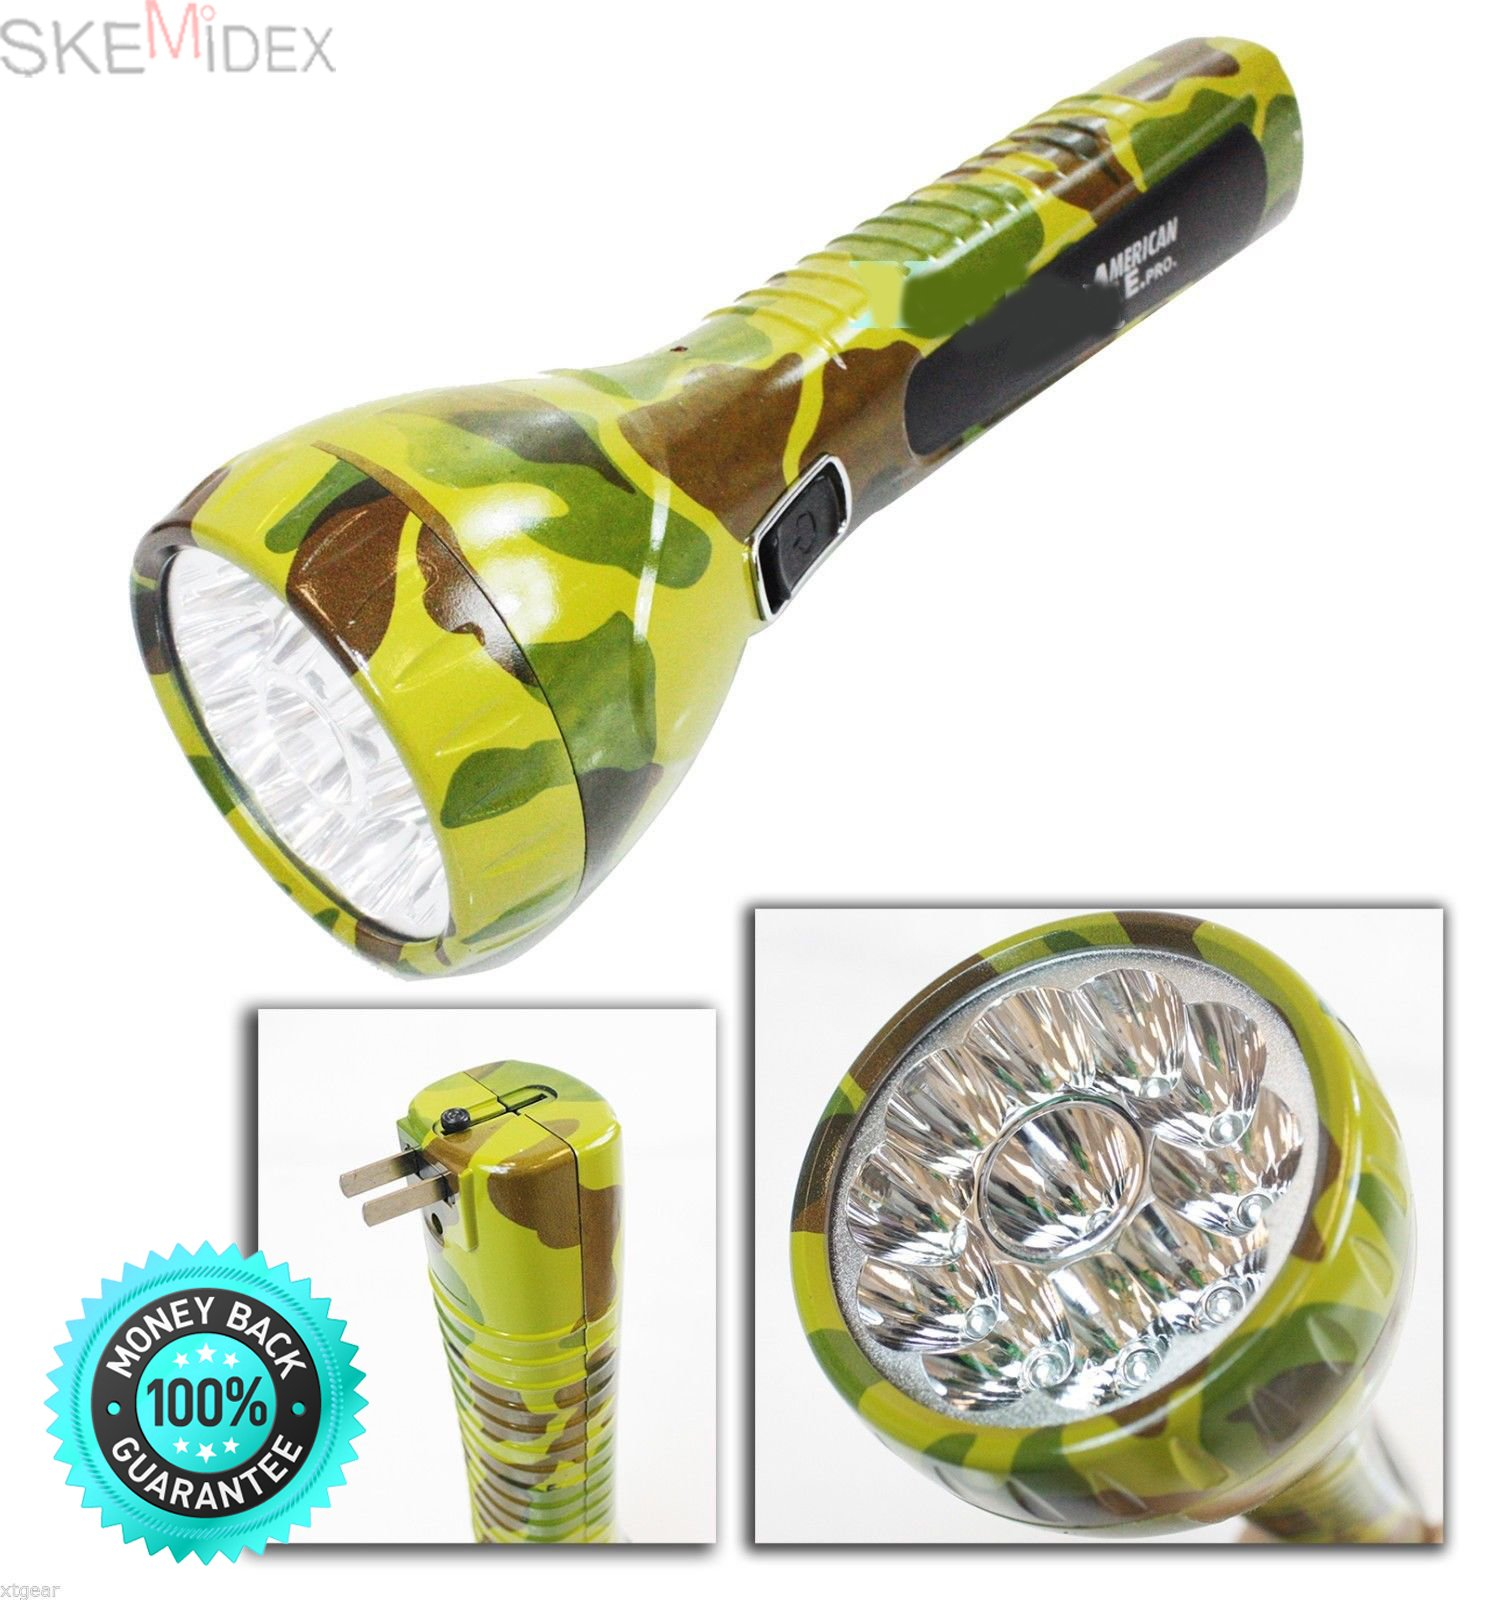 SKEMiDEX---Rechargeable 11 LED Camouflage Spot Emergency Work Light Flashlight Home OutDoor. Lot Two 11 LED Camouflage Rechargeable Spot Work Light Flashlight Emergency Home